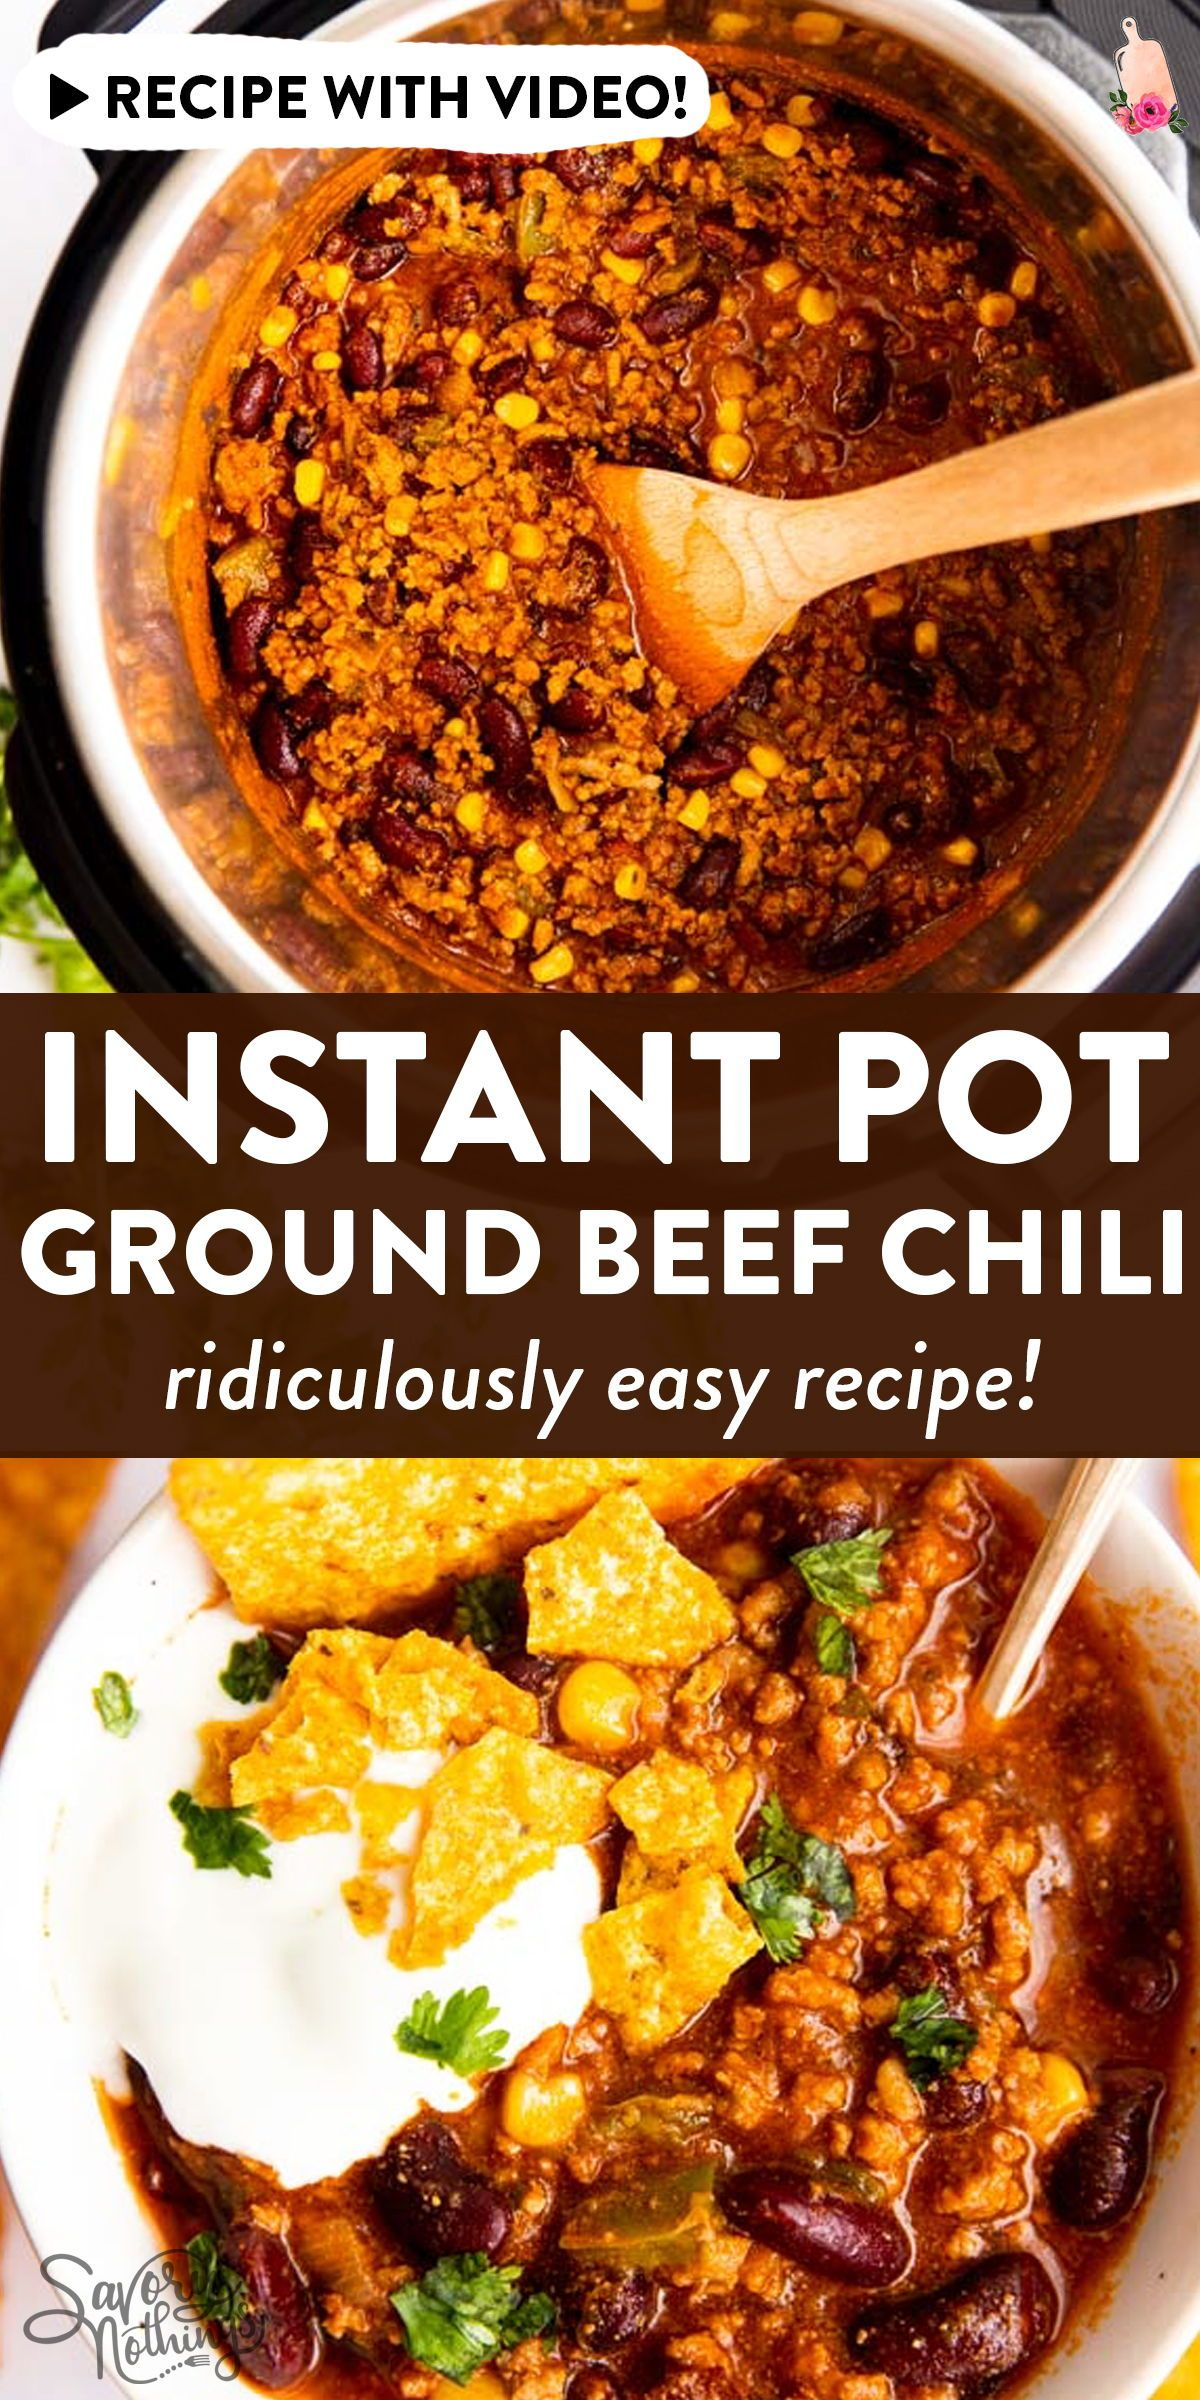 Unbelievably Easy Instant Pot Ground Beef Chili In 2020 Ground Beef Chili Slow Cooker Beef Stroganoff Mexican Food Recipes Easy